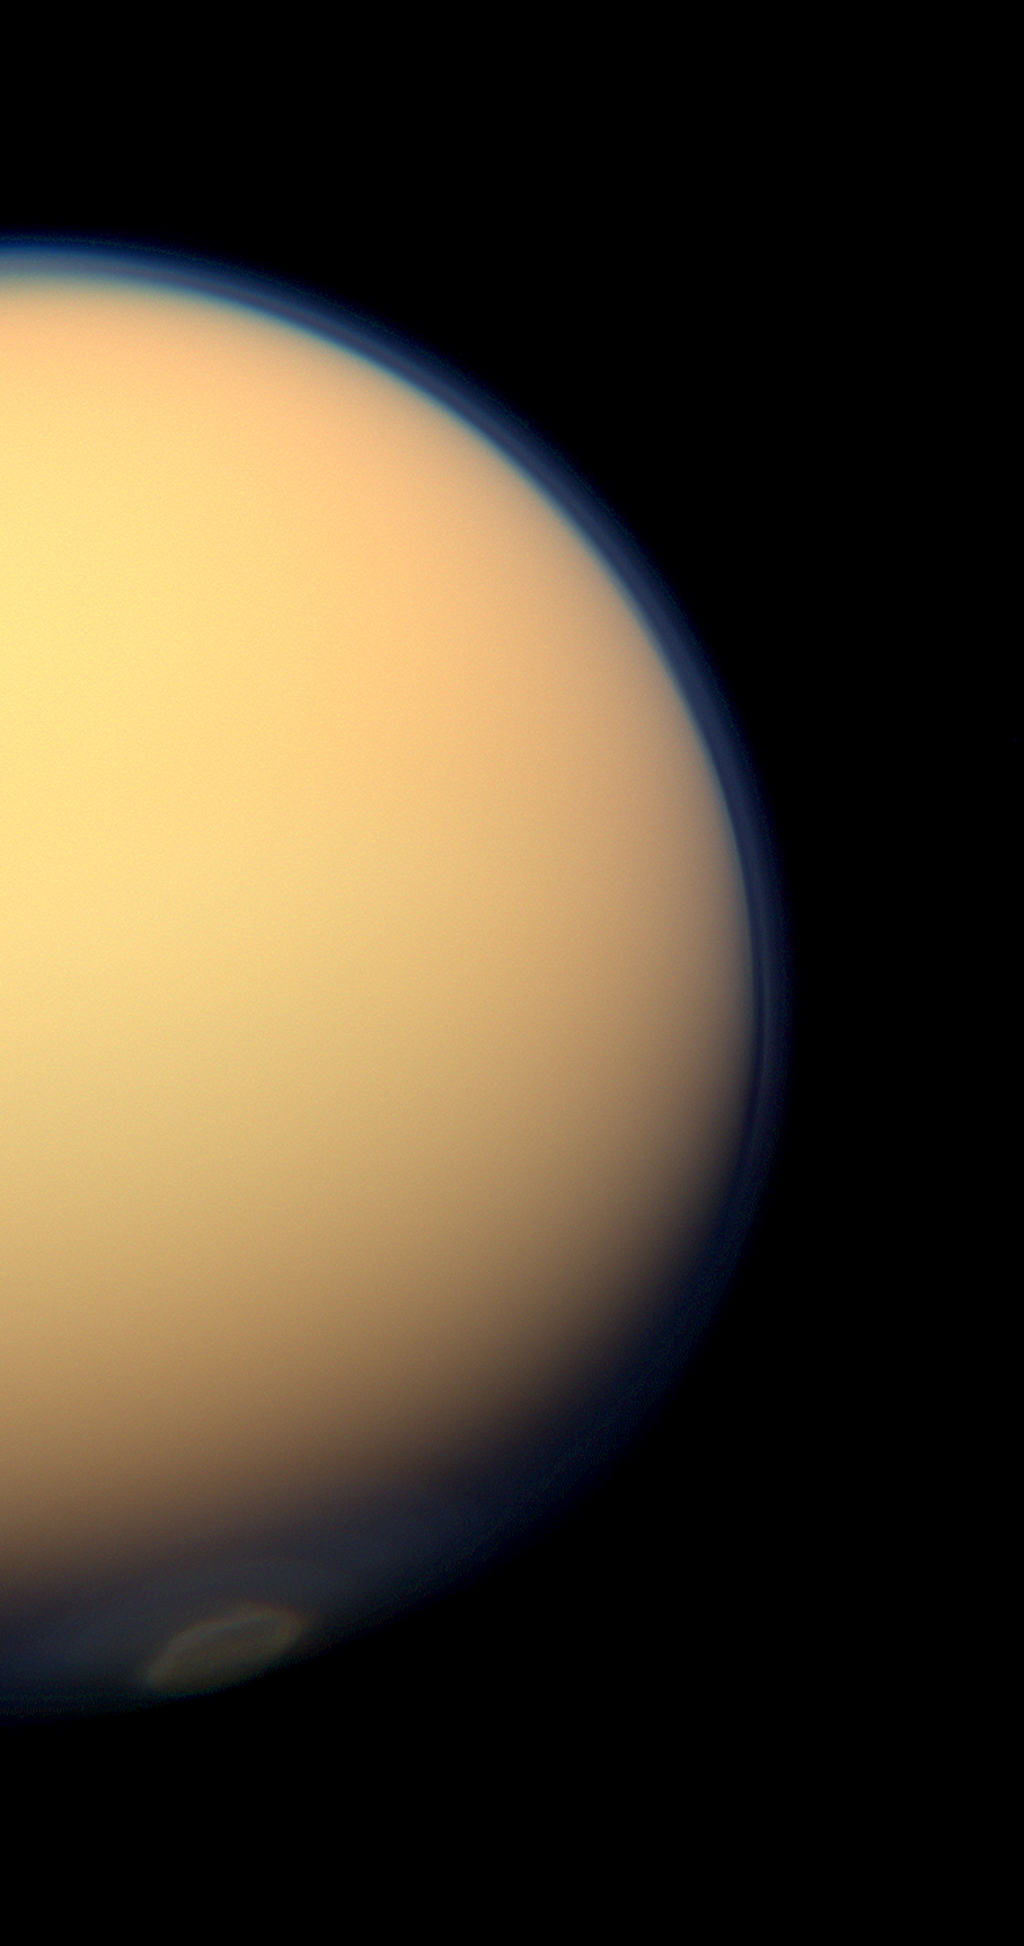 The recently formed south polar vortex stands out in the color-swaddled atmosphere of Saturn's largest moon, Titan, in this natural color view from NASA's Cassini spacecraft.